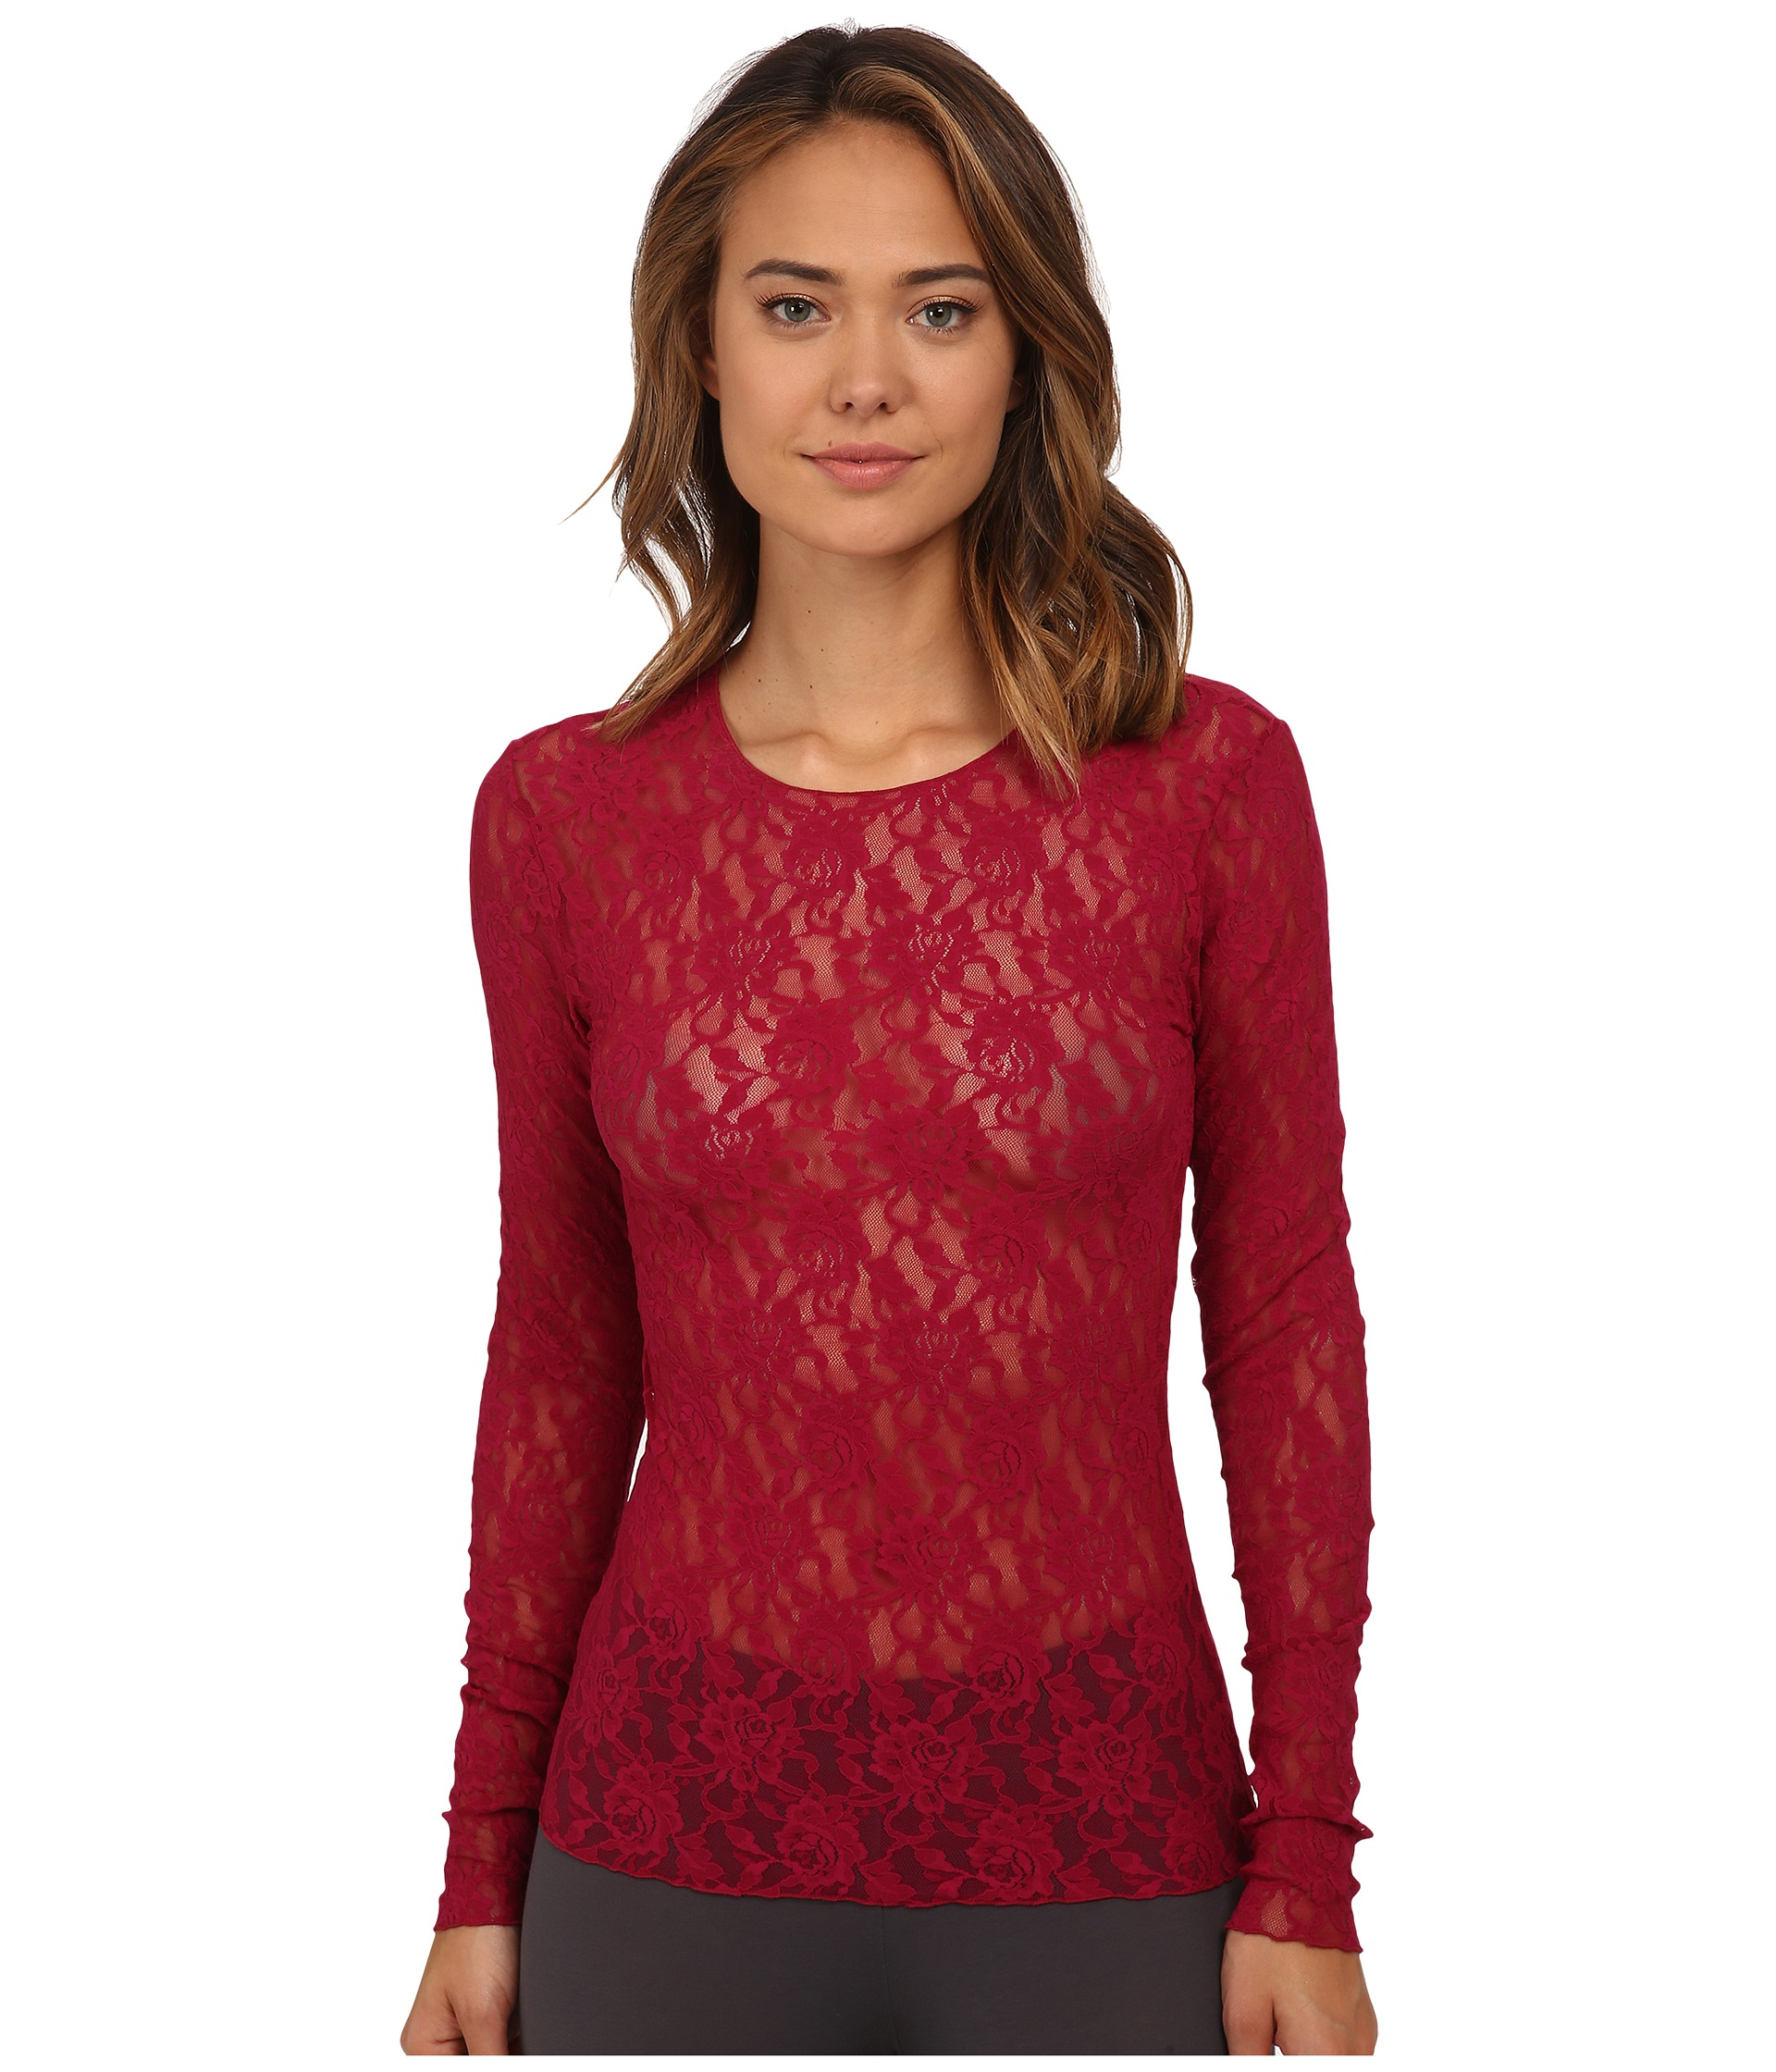 c7af7266fc0 Lyst - Hanky Panky Signature Lace Unlined Long Sleeve Top in Red